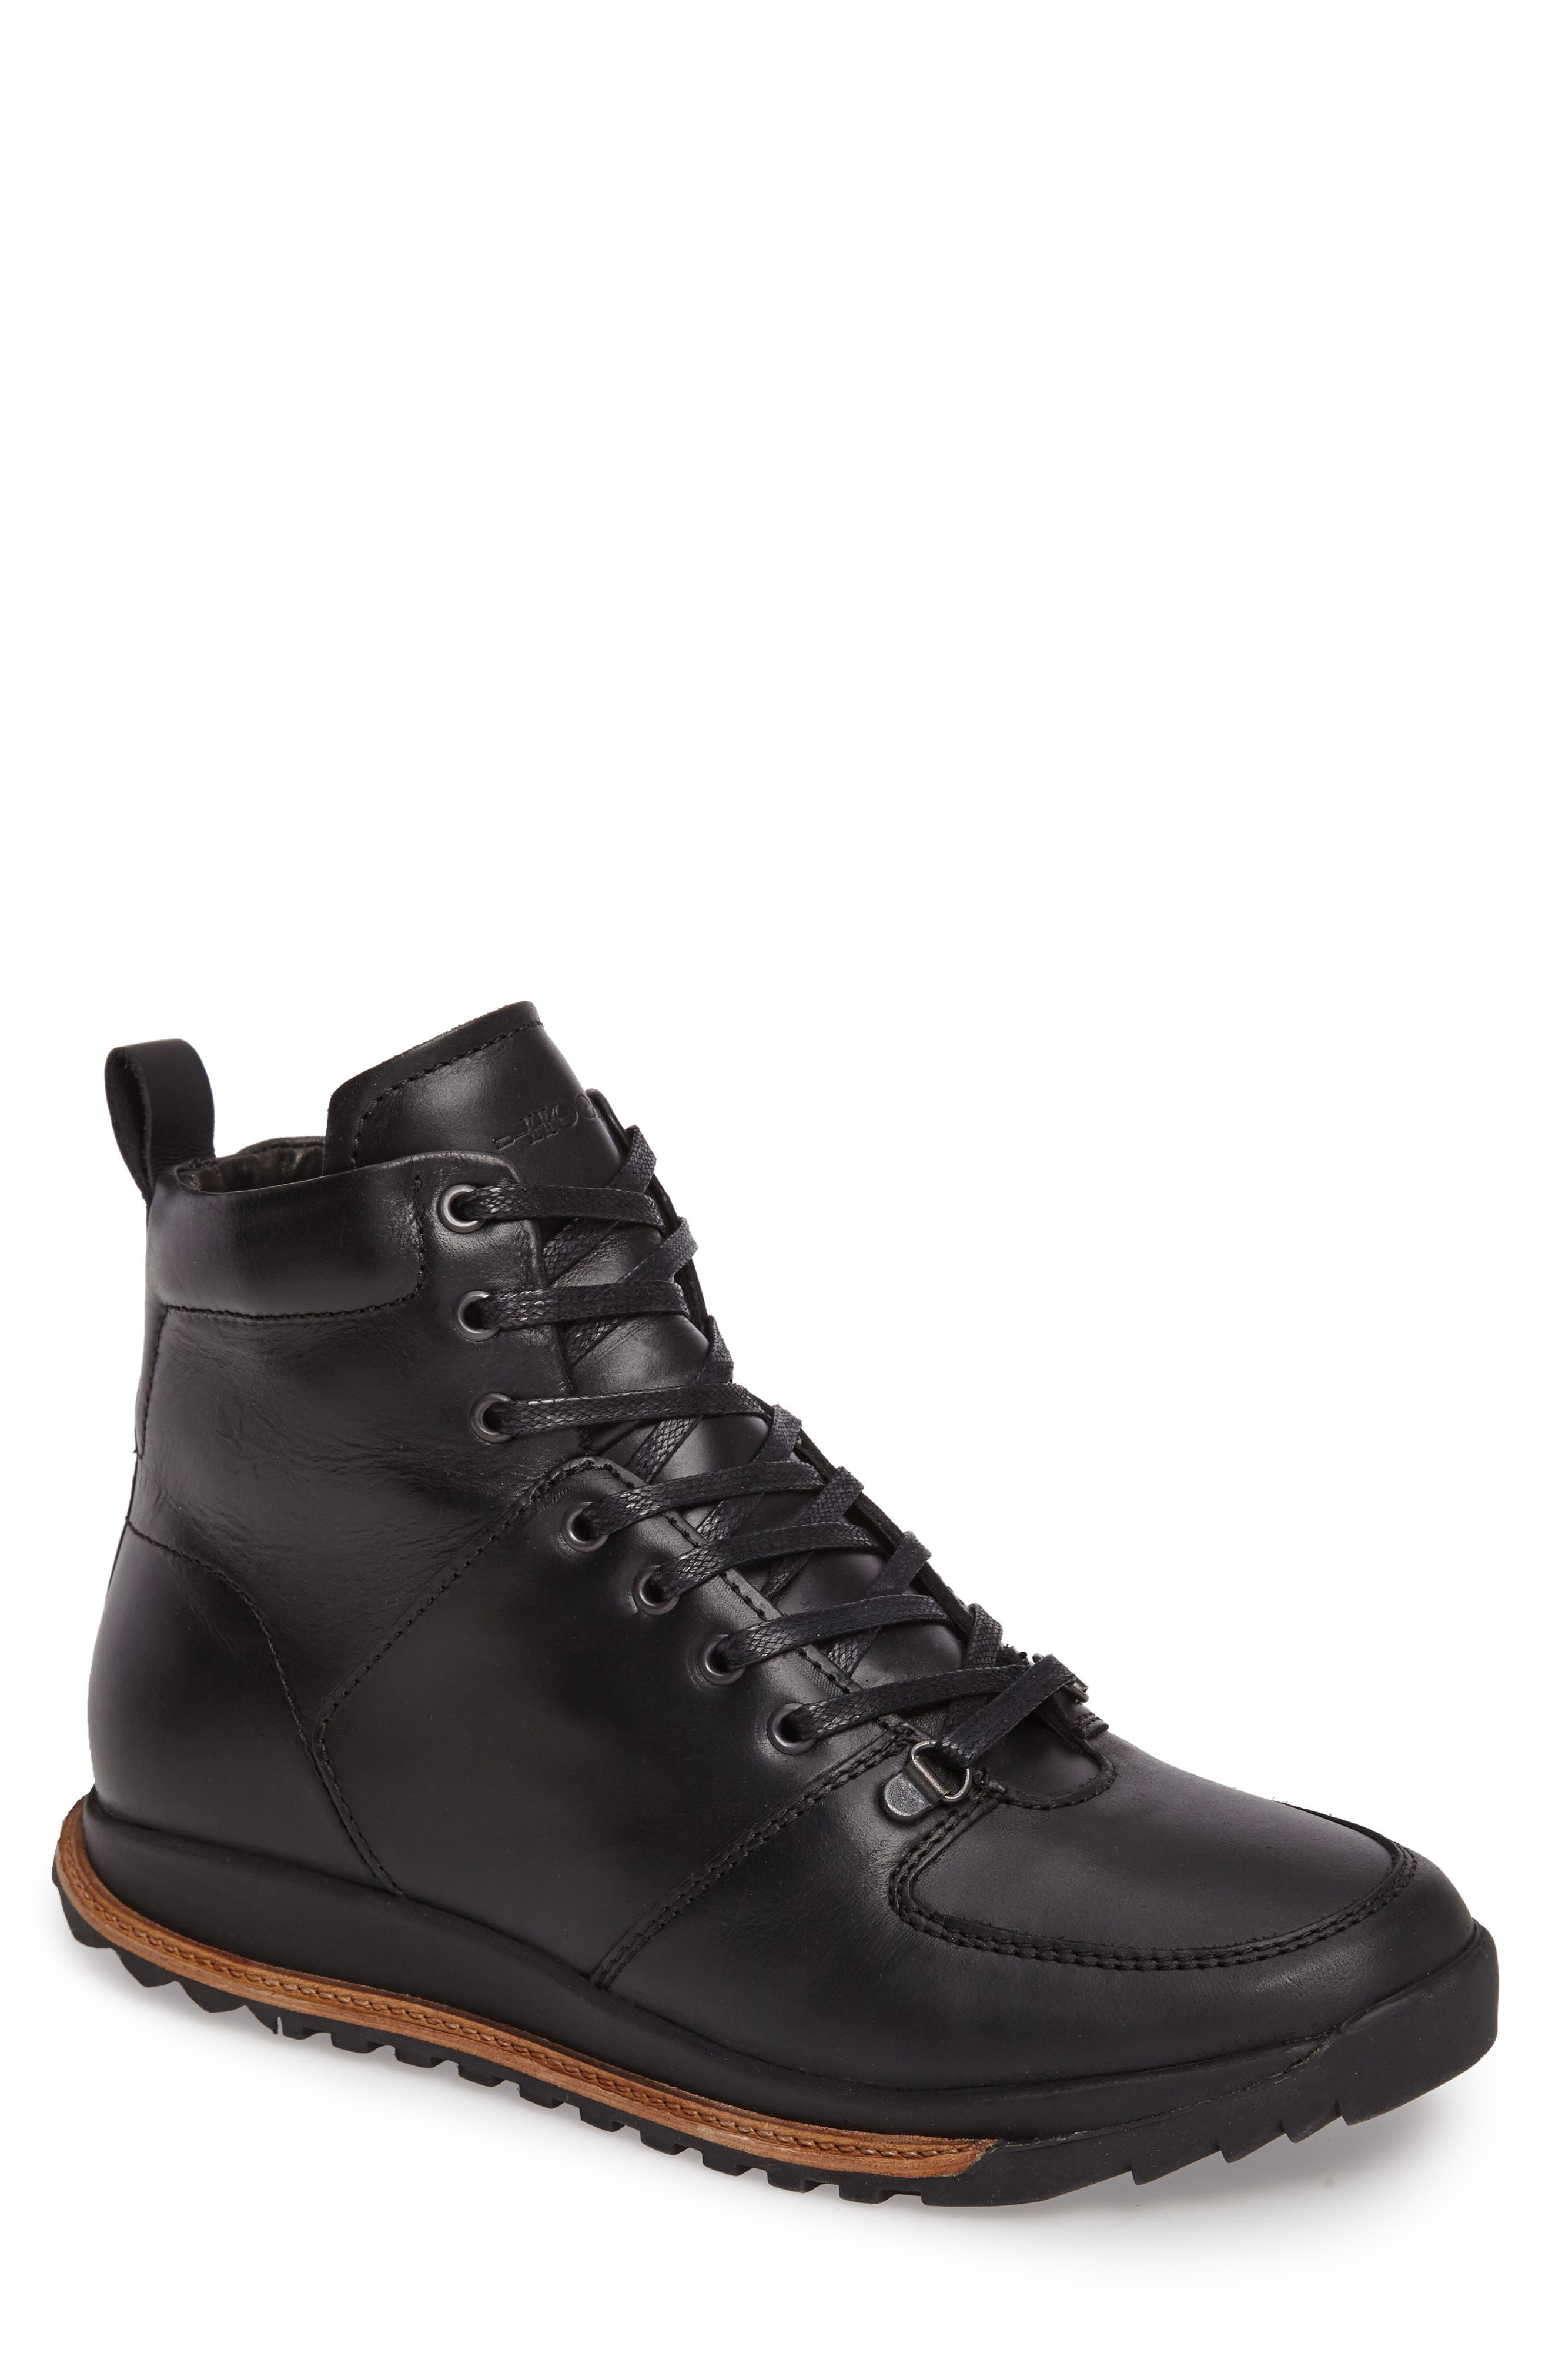 Concord Mid Top Wool Cuffed Waterproof Boot,                             Main thumbnail 1, color,                             001